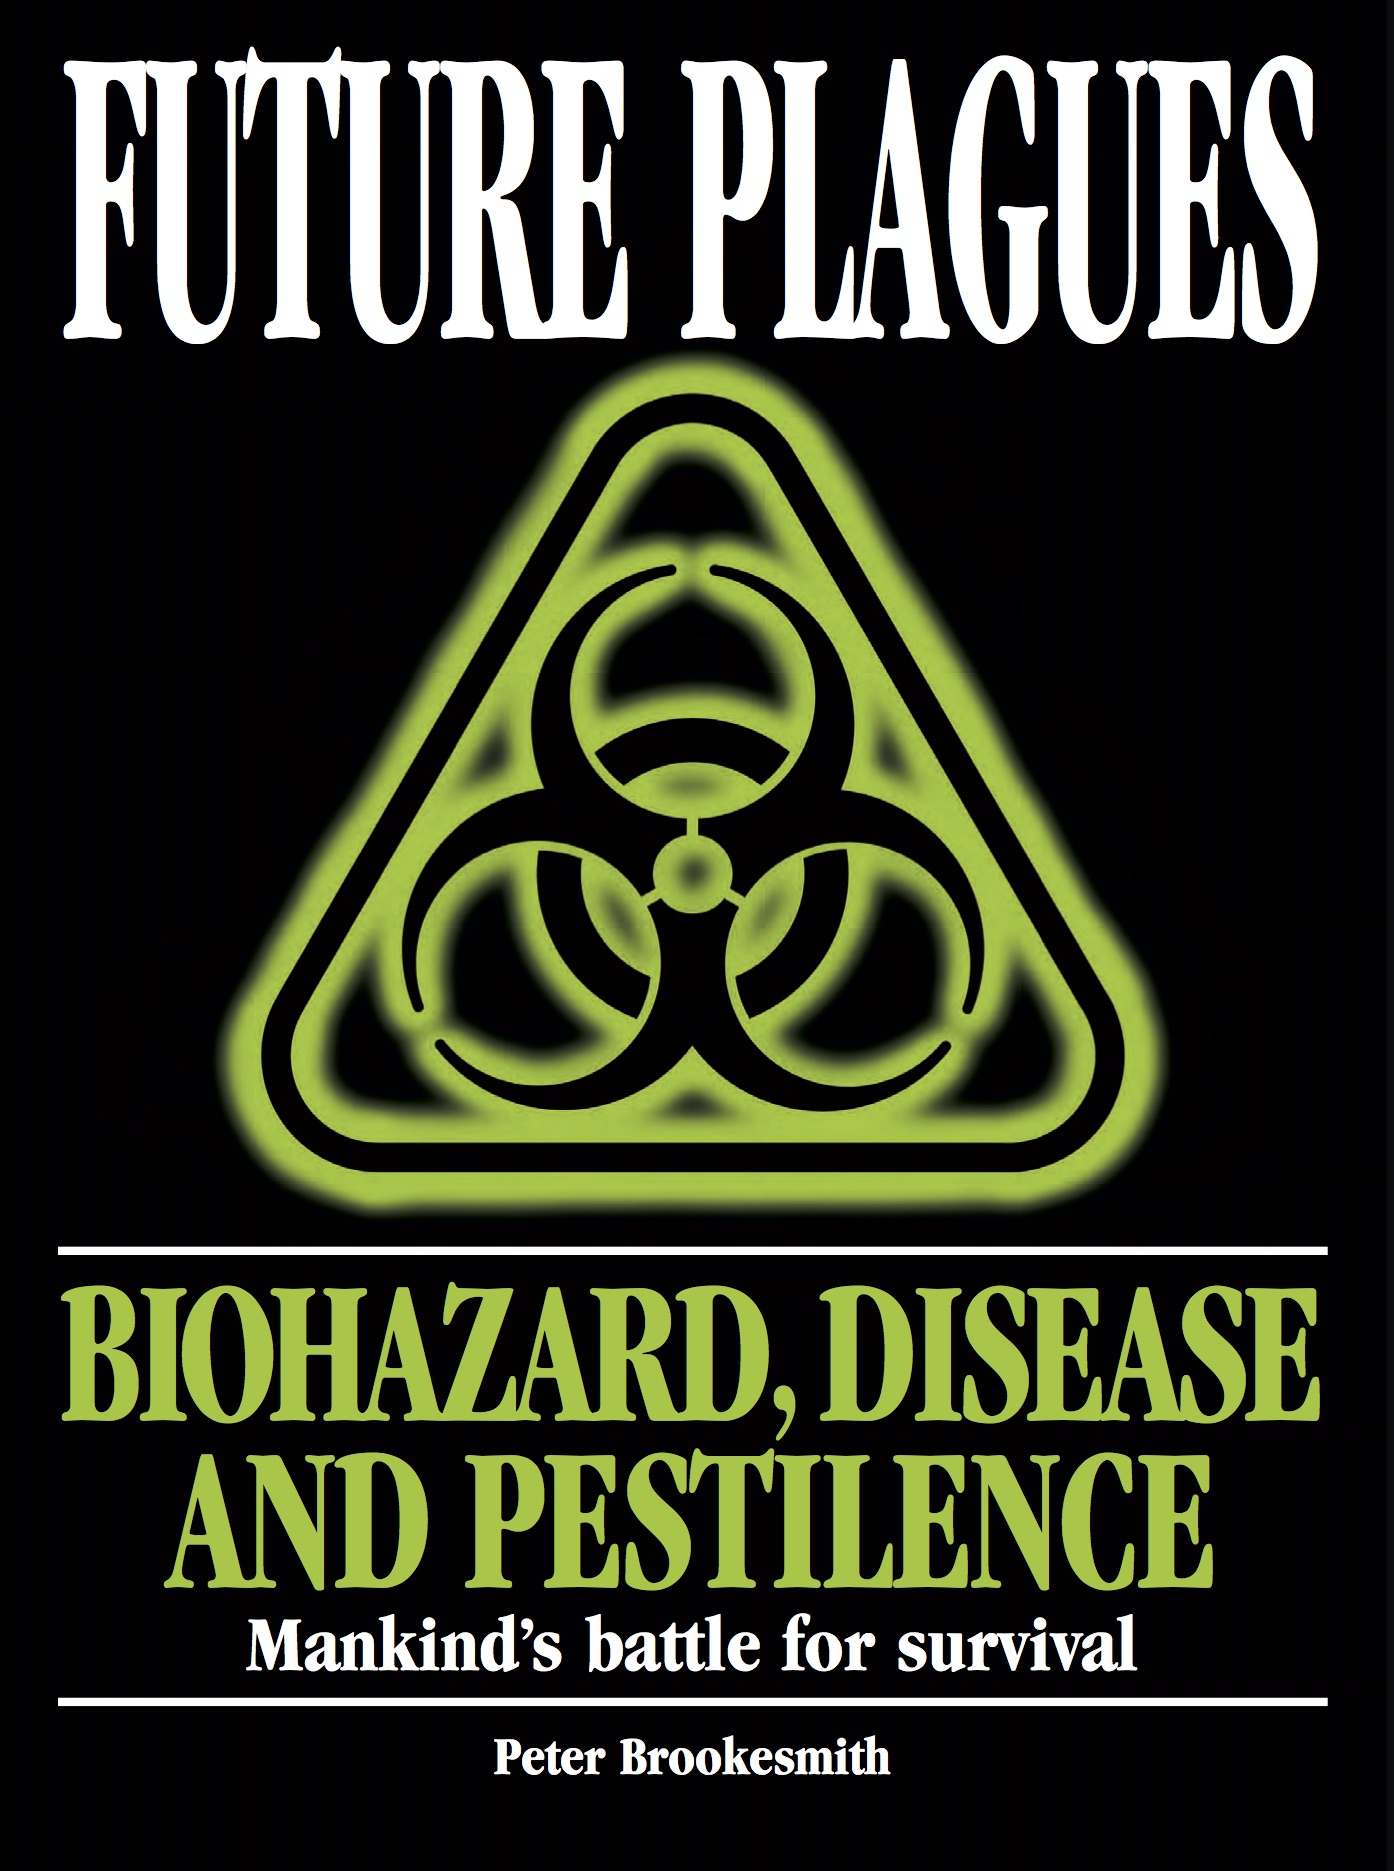 Future Plagues: Biohazard, Disease and Pestilence